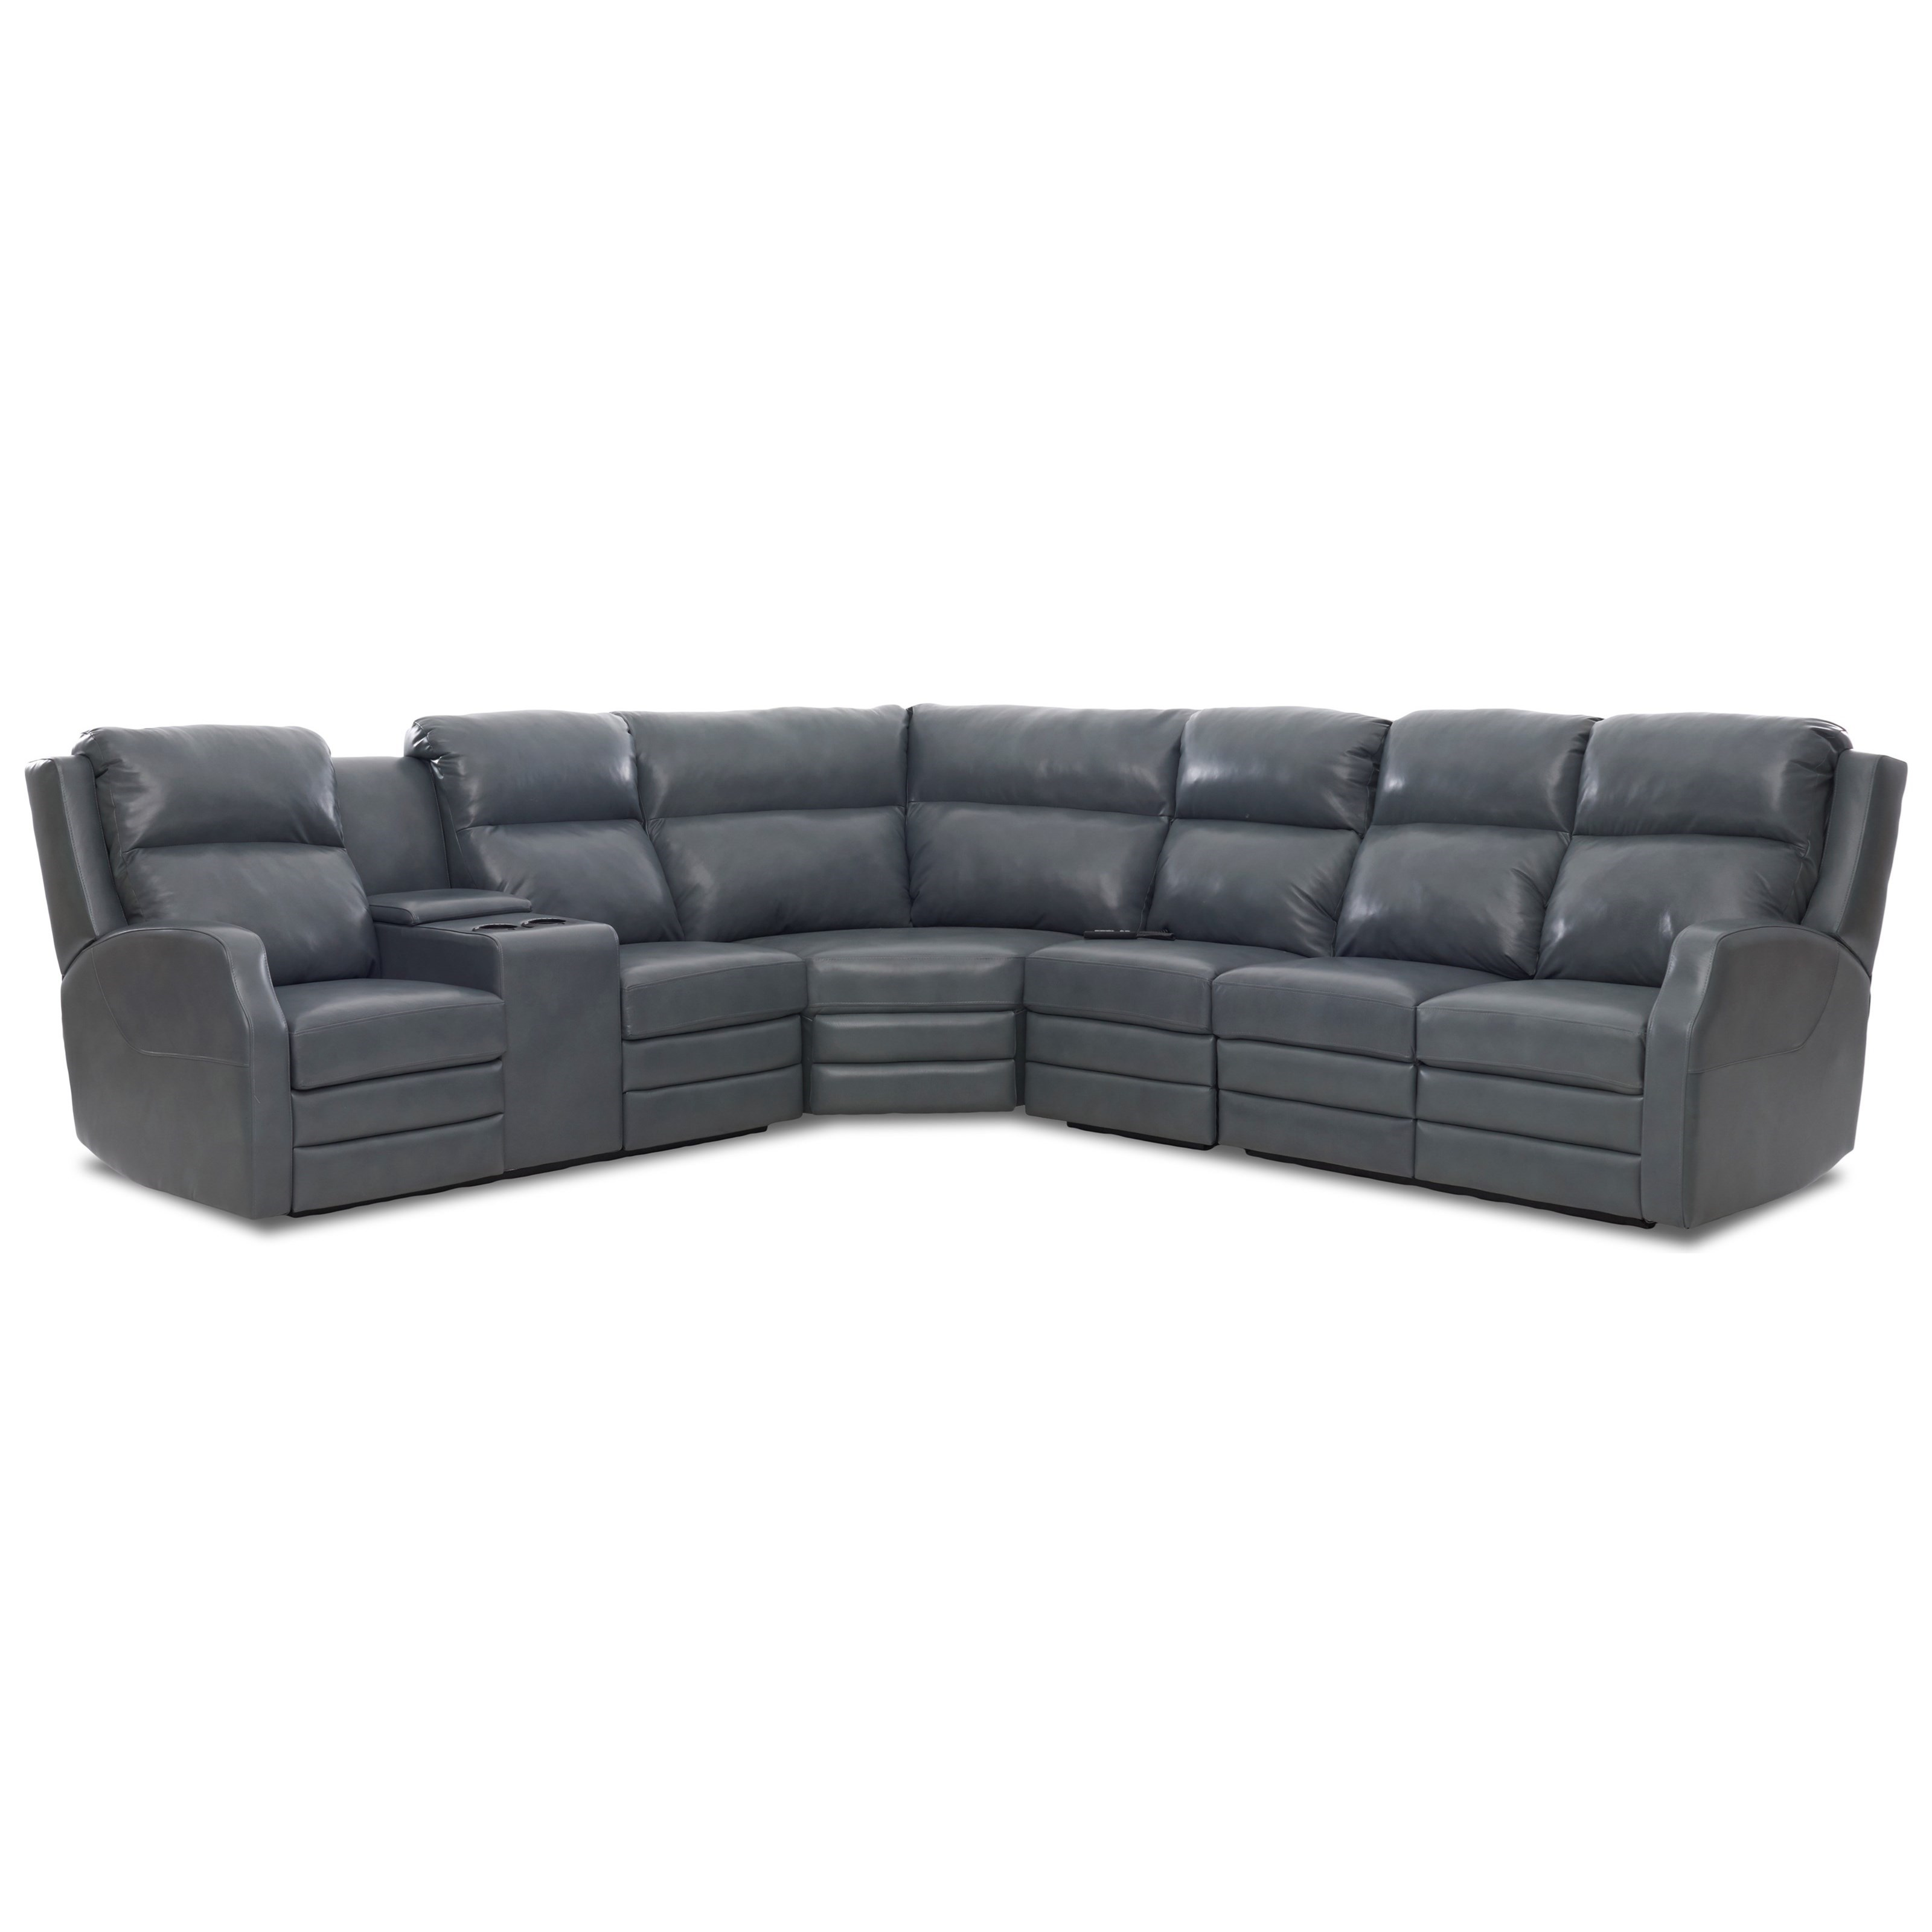 Four Seat Power Reclining Sectional Sofa With Power Headrests Lumbar